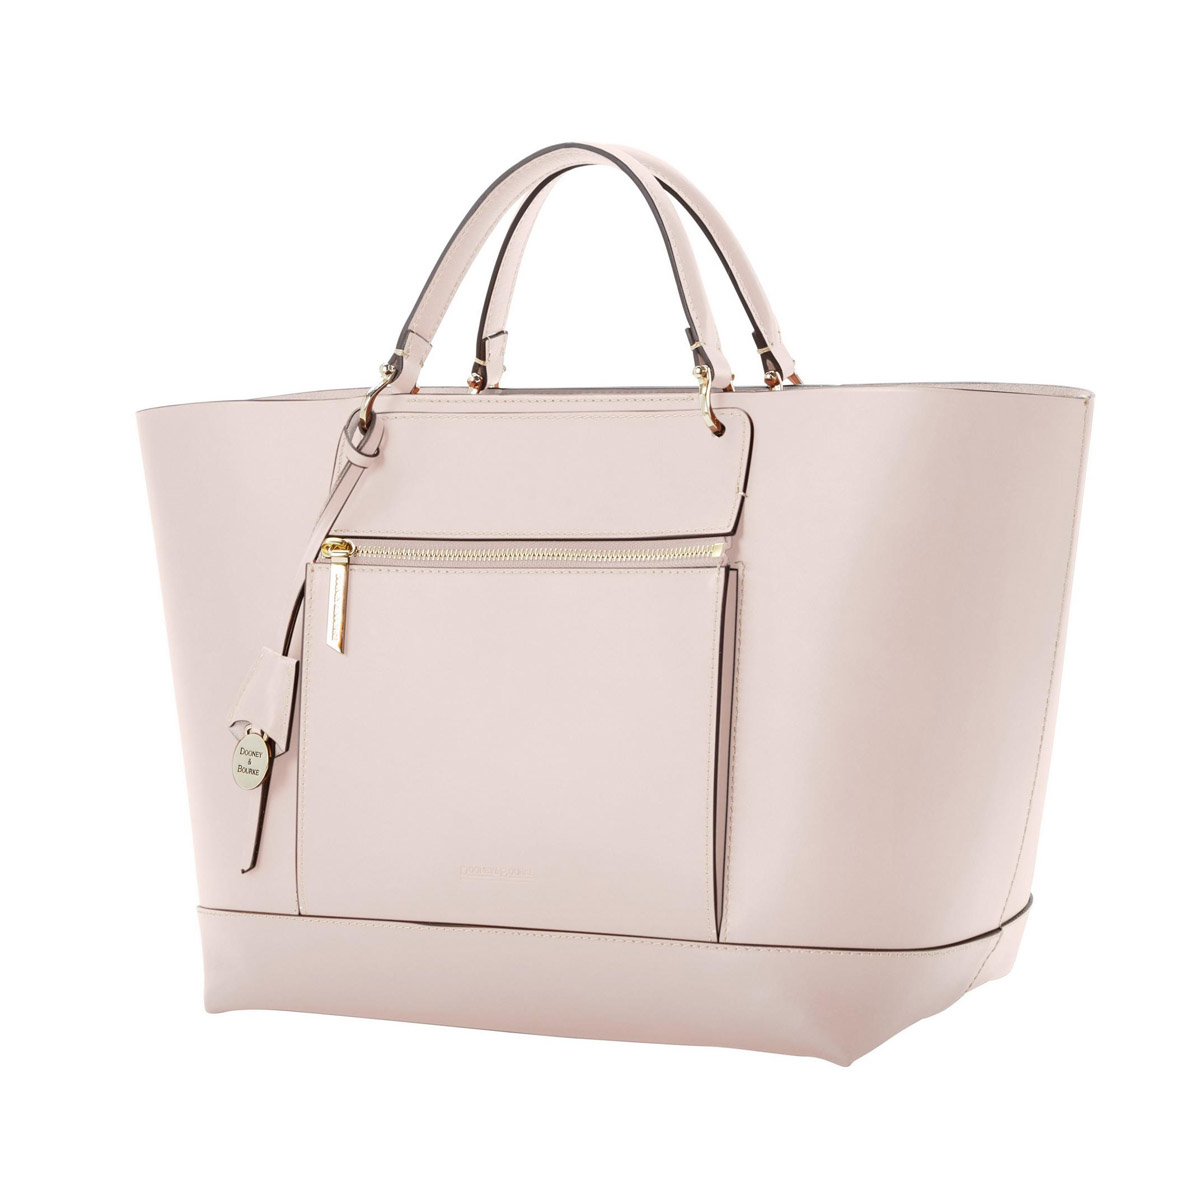 Dooney & Bourke Mariella bag - This stylish bag epitomizes what Dooney & Bourke is all about. Smooth leather, tow inside zip pockets, a cell phone pocket, soft lining and detachable strat make this bag as functional as it is beautiful. Generously provided by D&B.Retail Value: $695.00